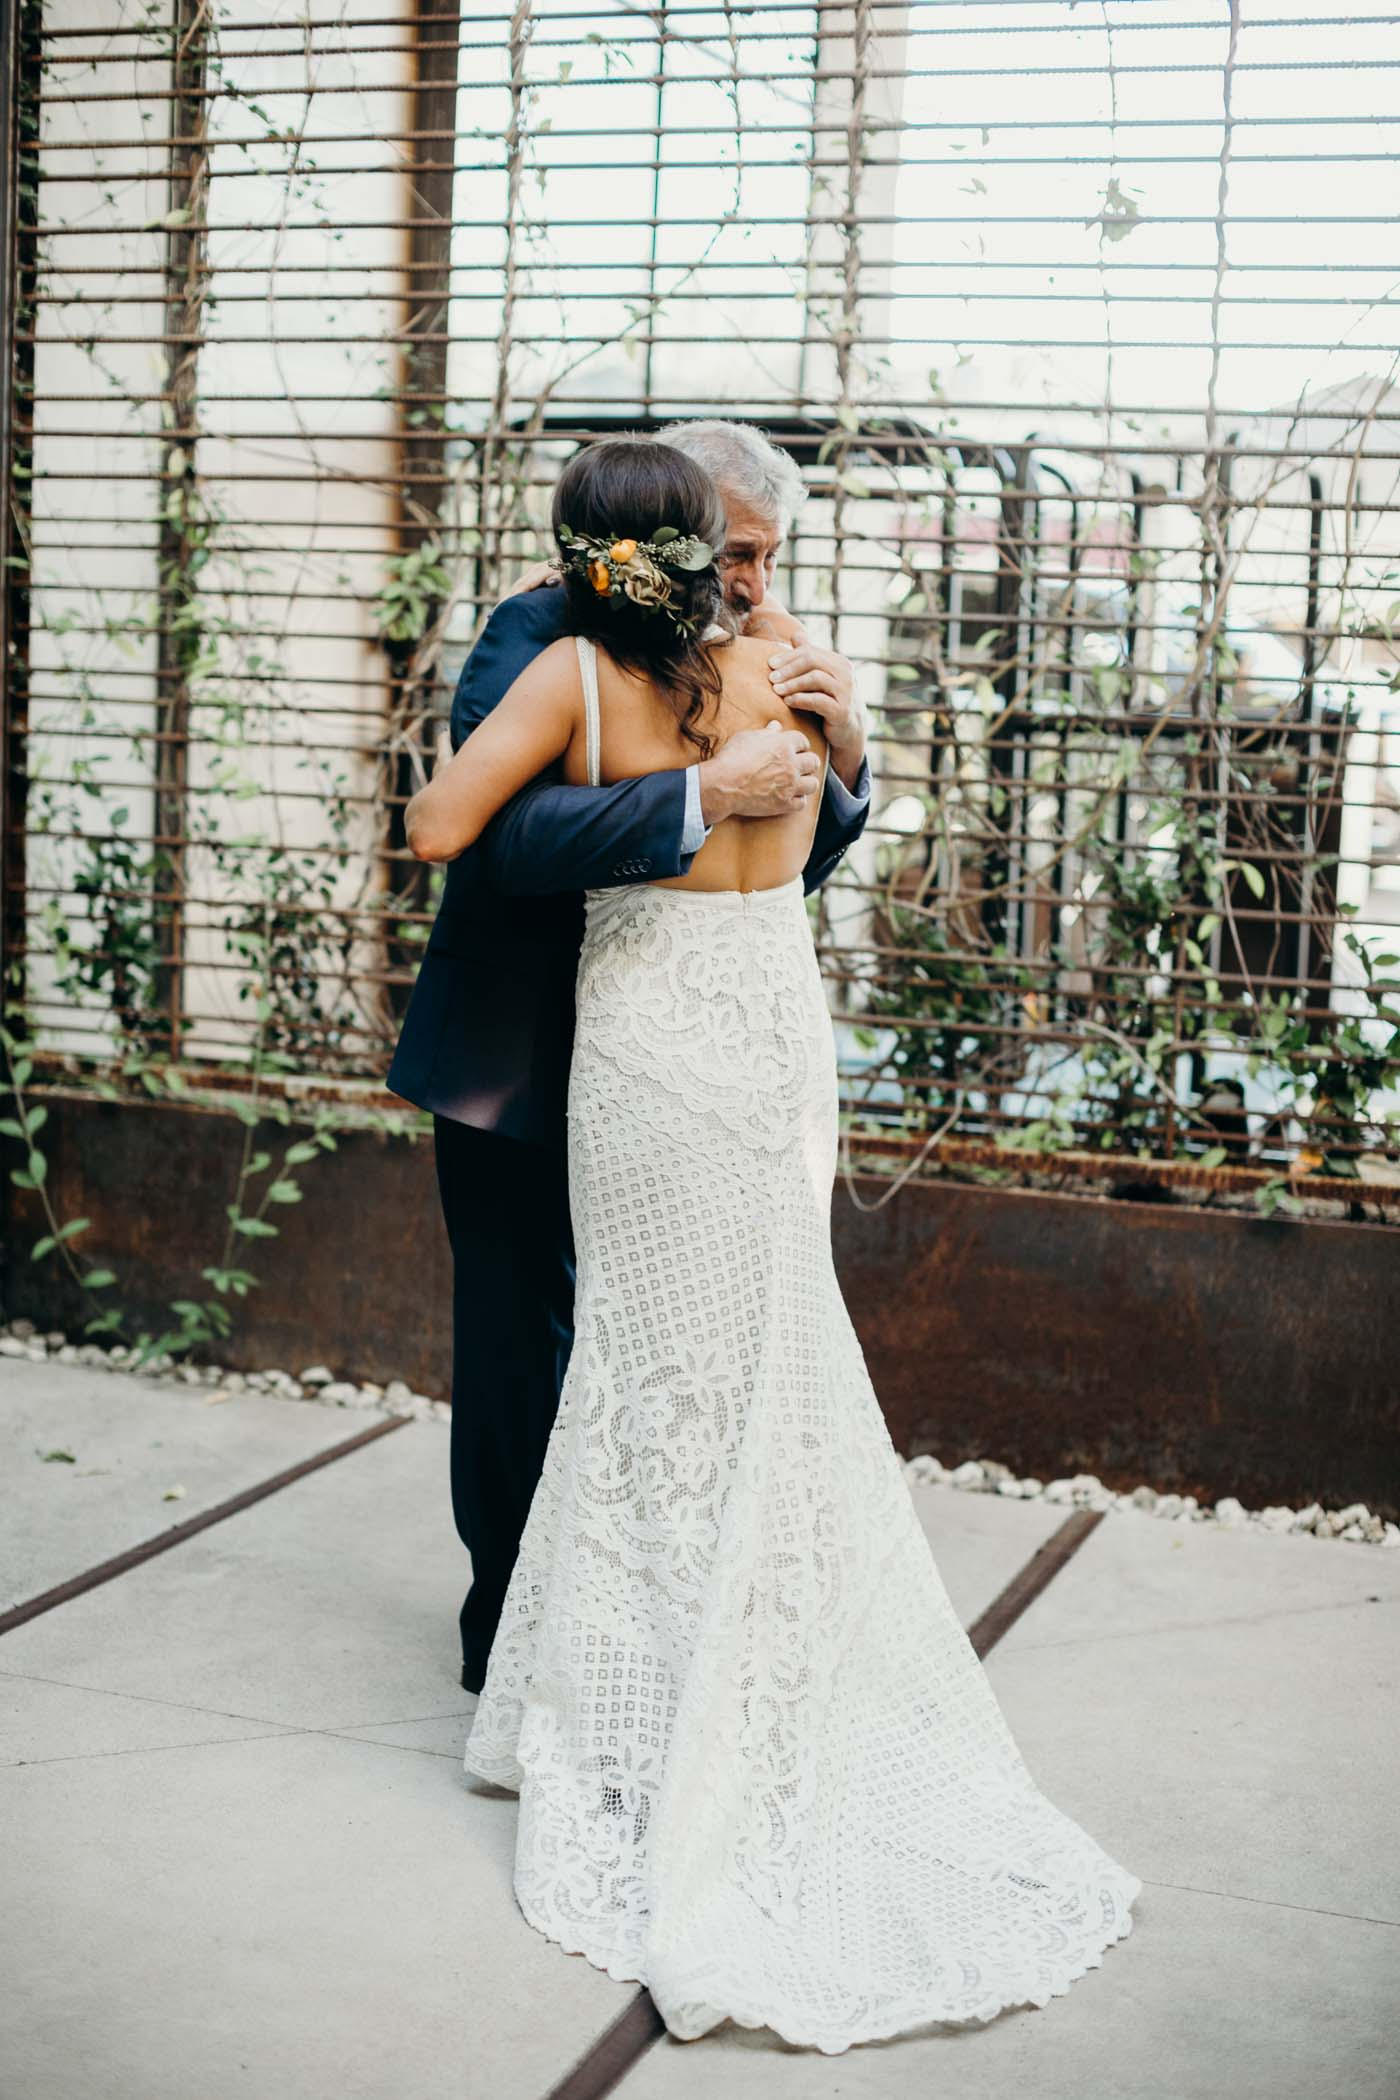 Bride hugging her dad on her wedding day. You can see the back of her and she is wearing an open back lace boho dress.